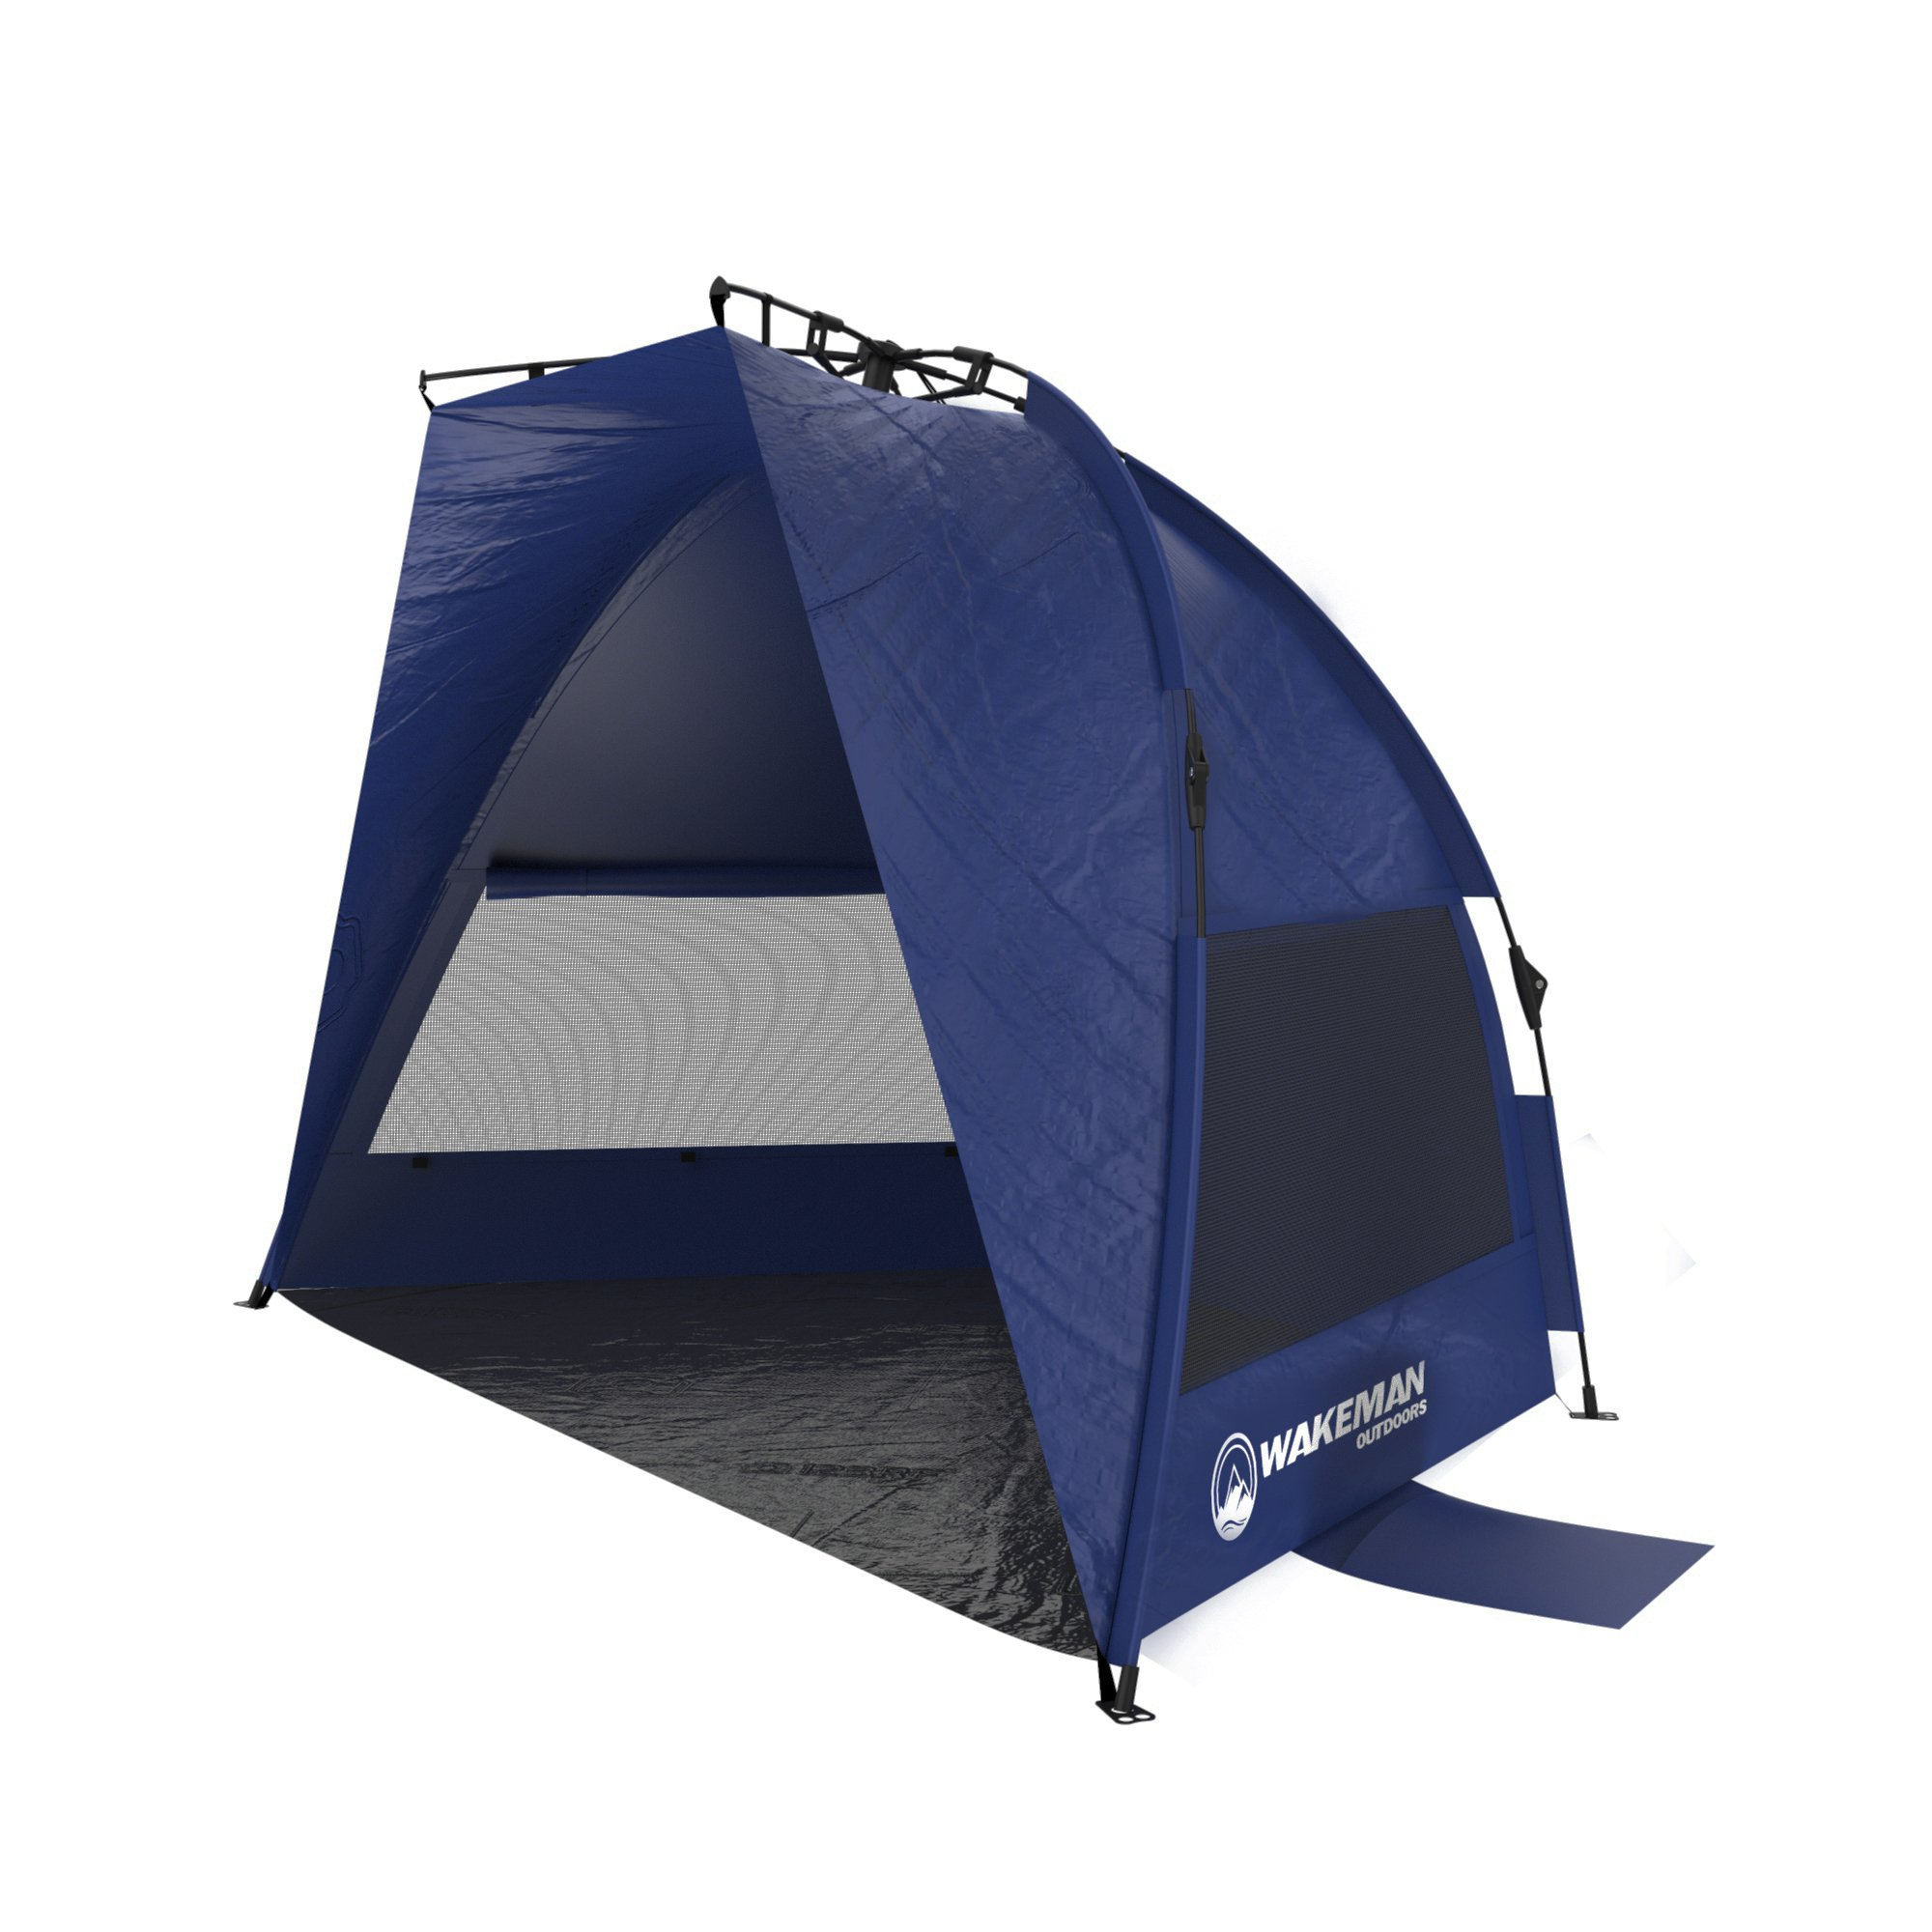 Wakeman Pop up Beach Tent- Sun Shelter for Shade with UV Protection, Water and Wind Resistant, Instant Set up and Carry Bag Outdoors (Blue)